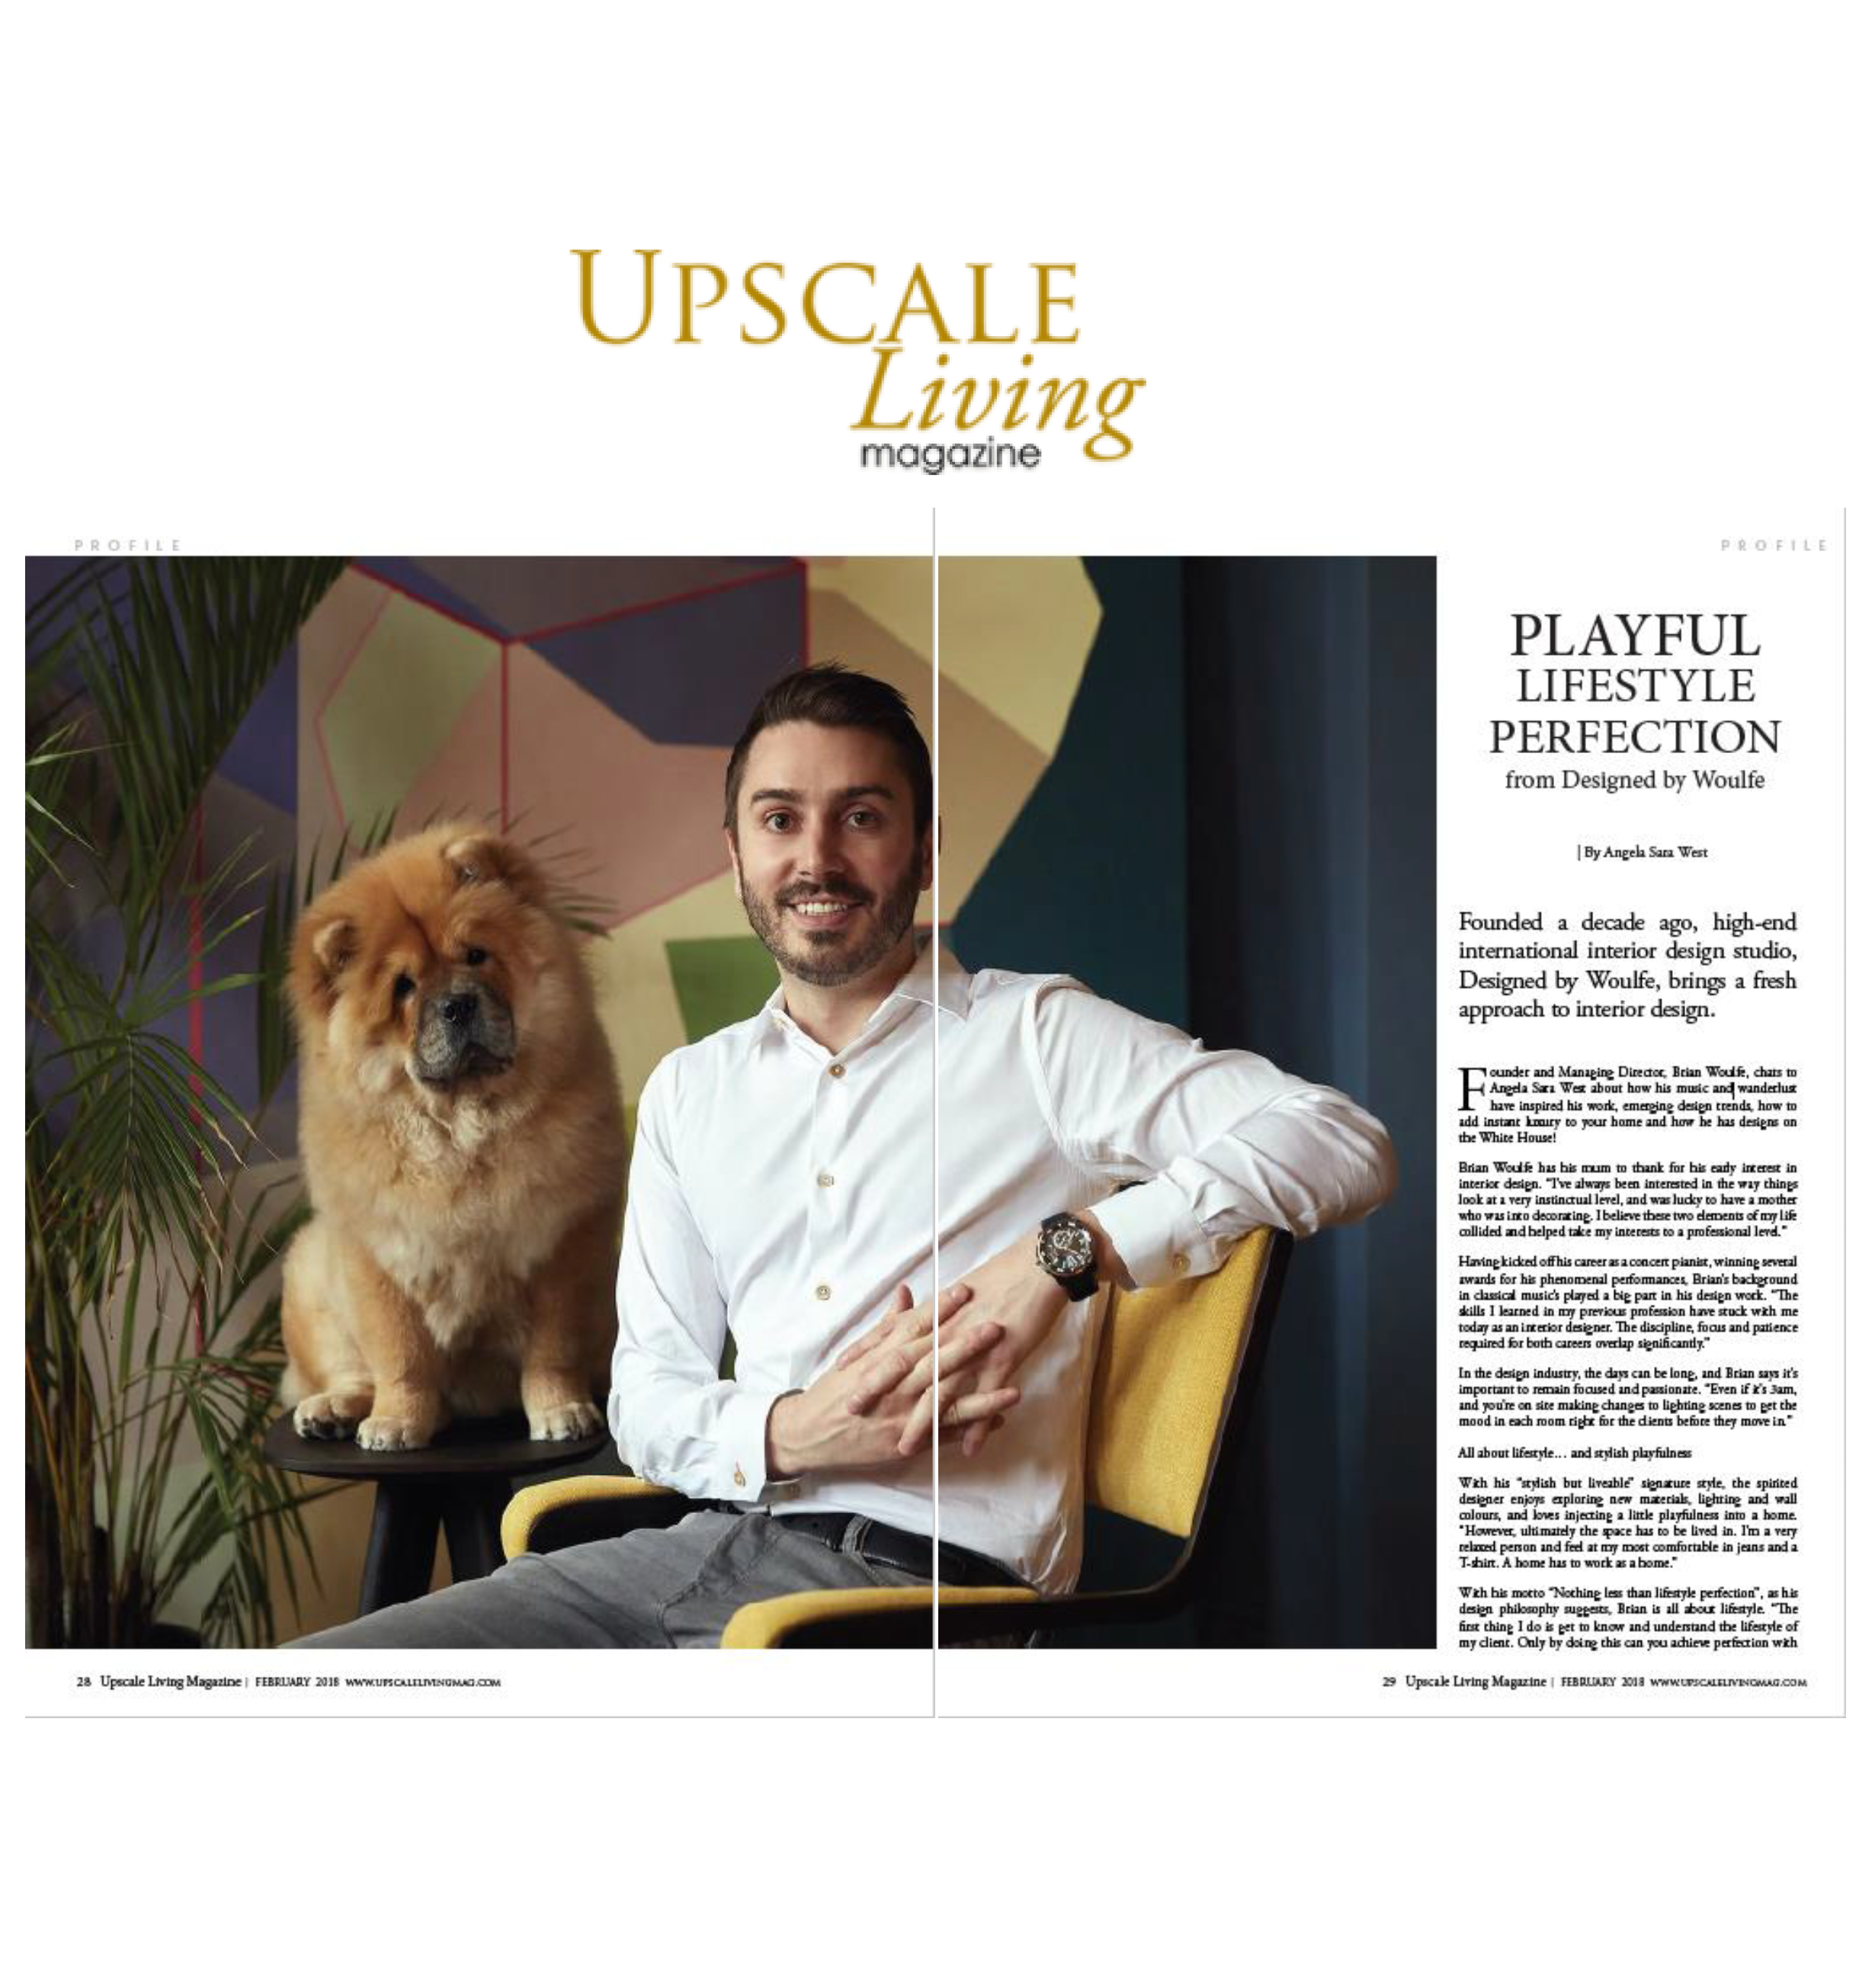 Upscale Living Magazine, Brian Woulfe, Designed by Woulfe